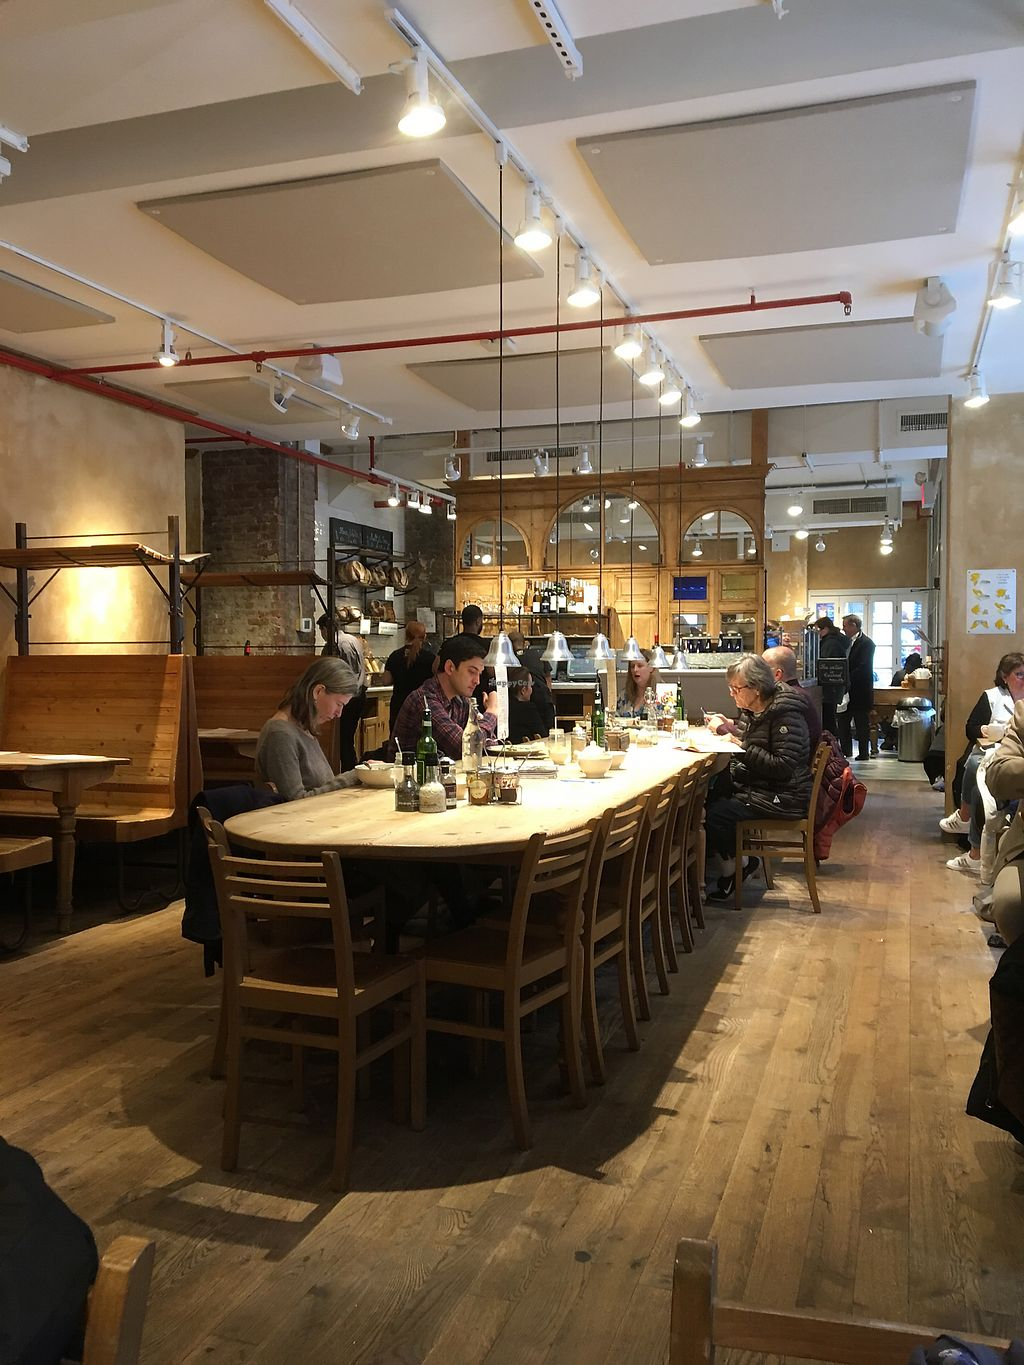 "Photo of Le Pain Quotidien - 97th & Madison  by <a href=""/members/profile/JJones315"">JJones315</a> <br/>Interior <br/> April 17, 2018  - <a href='/contact/abuse/image/86277/387324'>Report</a>"